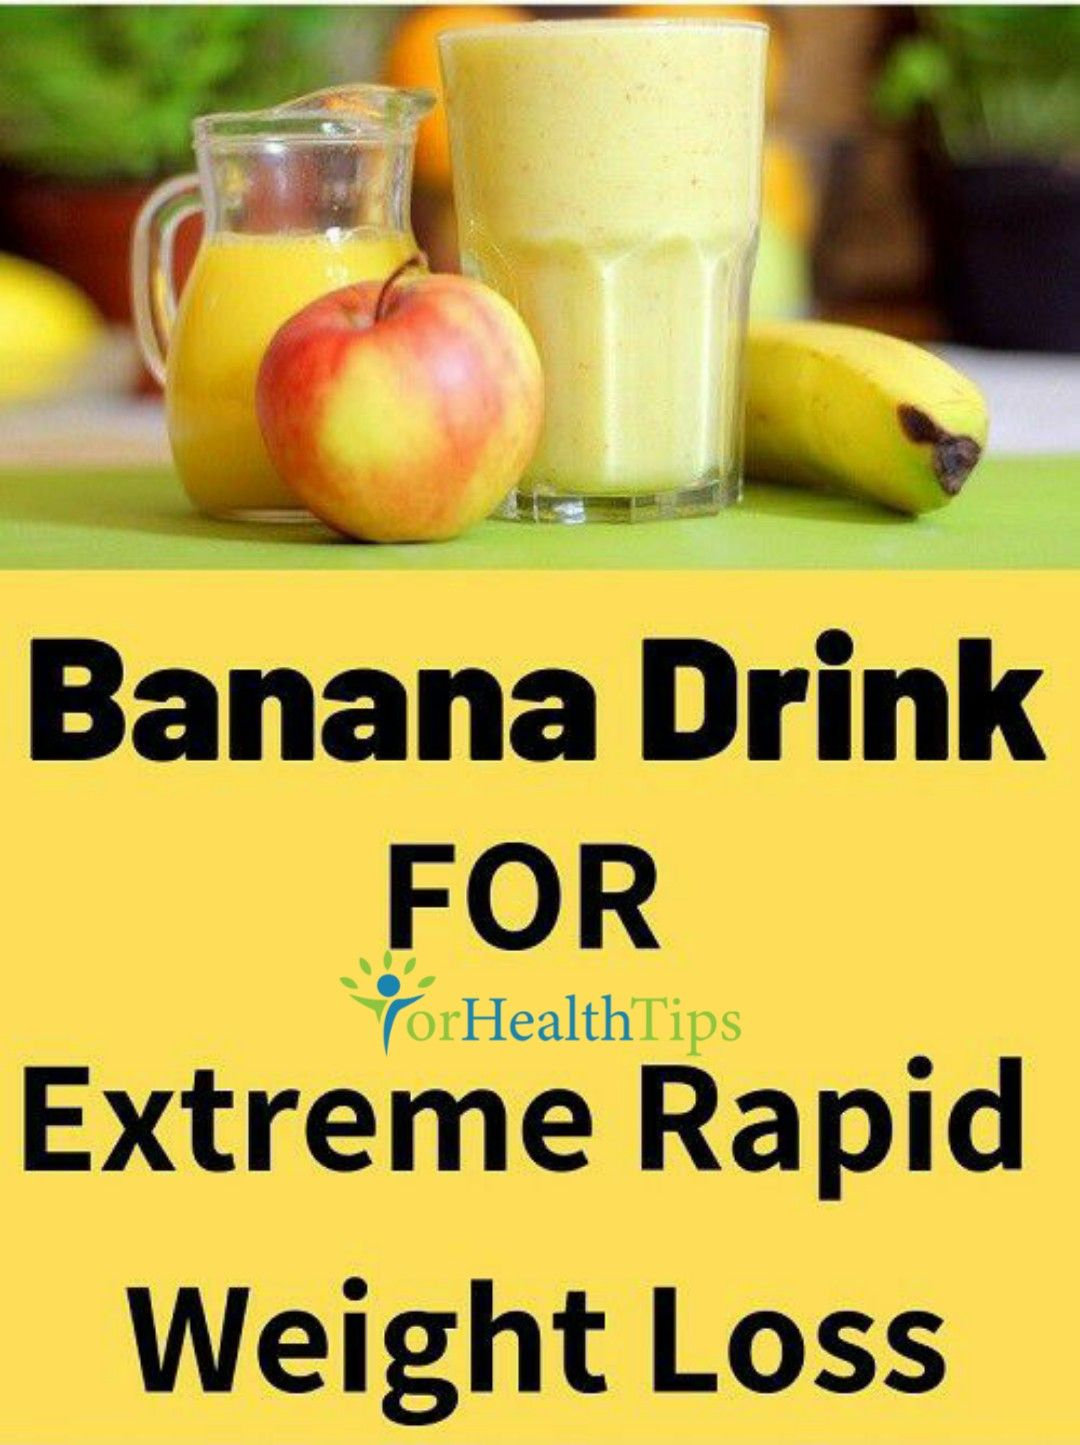 Banana Drink for Extreme rapid #Weightloss